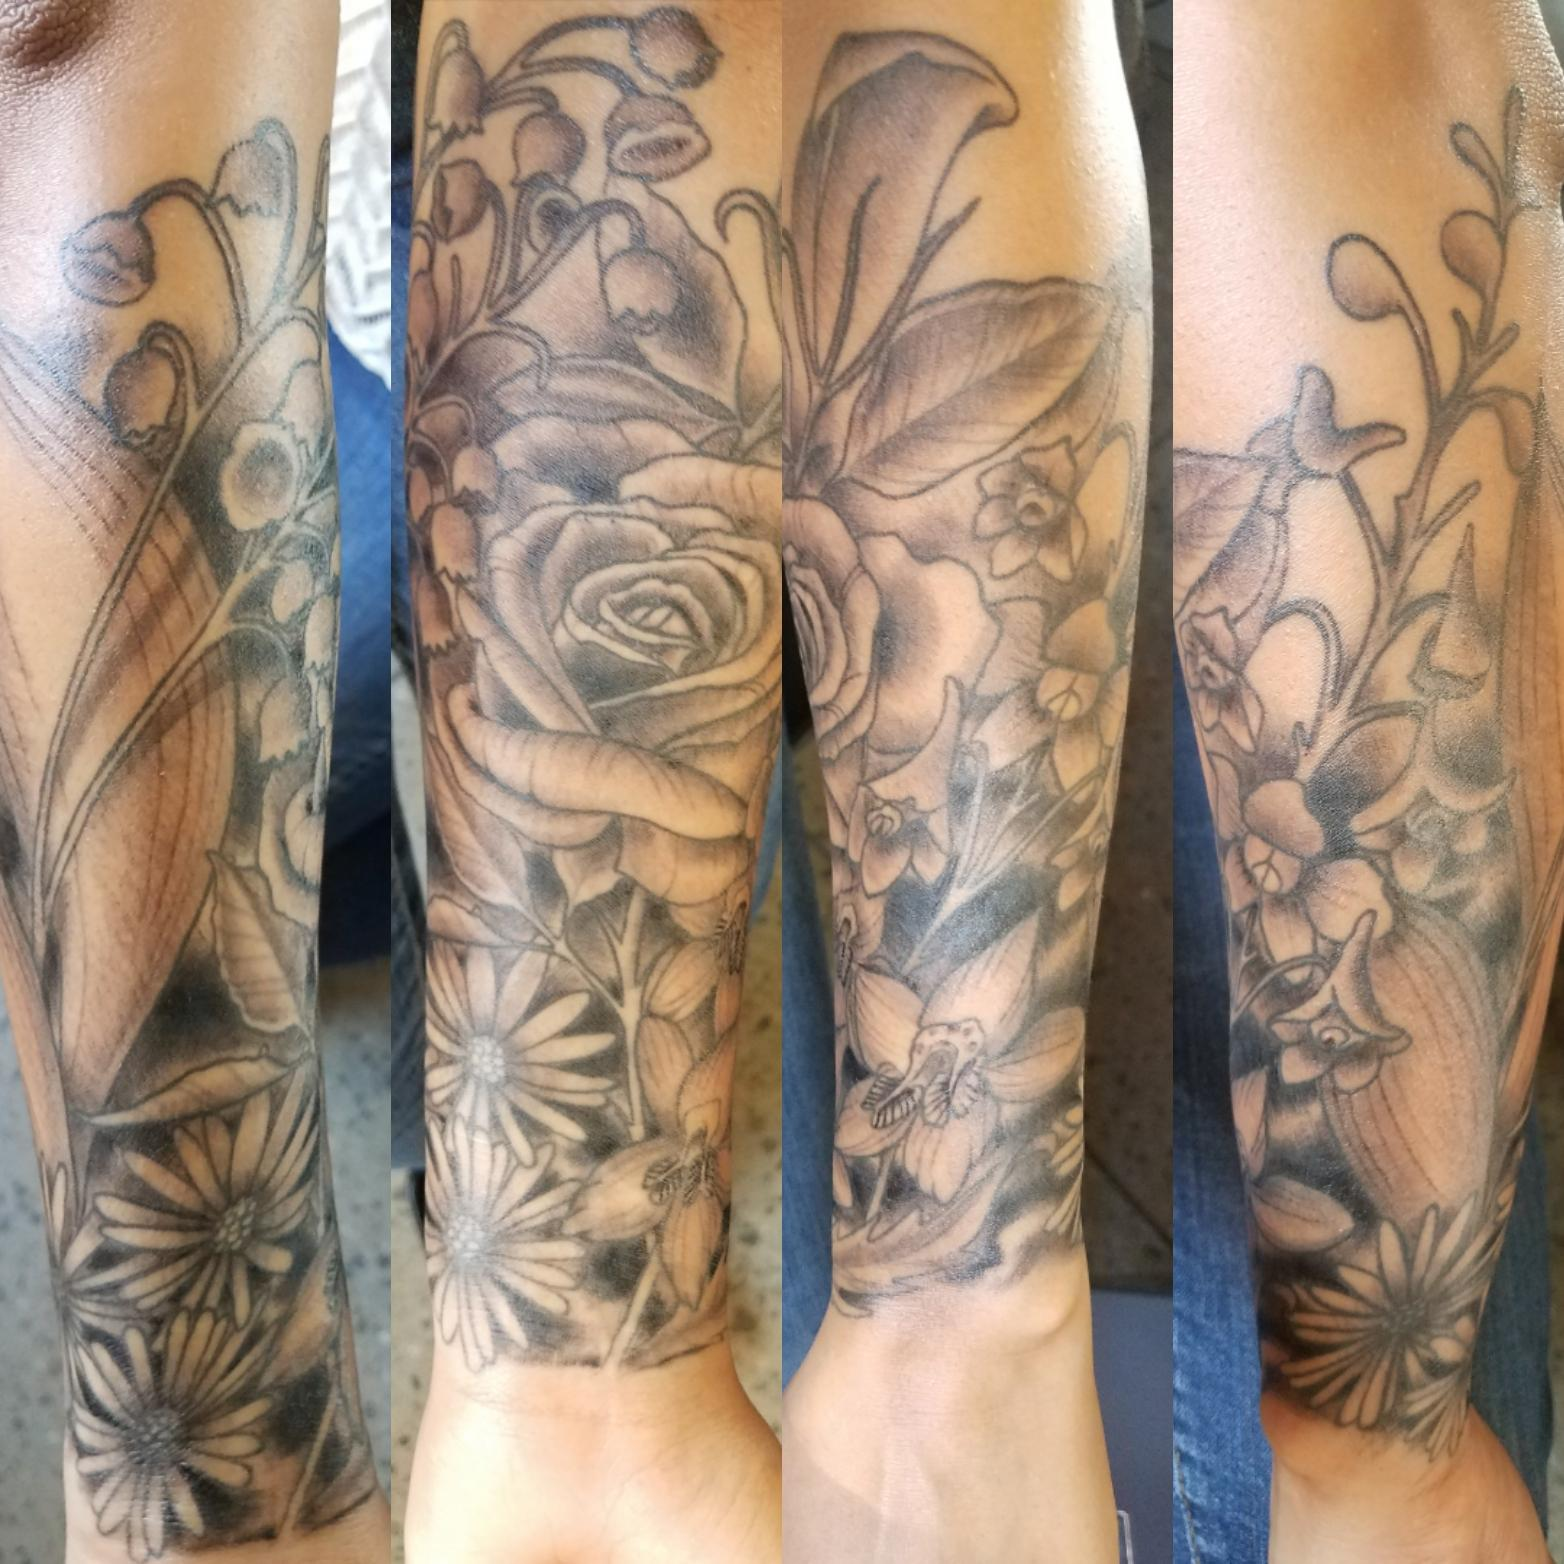 My Birth Month Flower Half Sleeve Done By Marcus Aday At Ideas And Designs